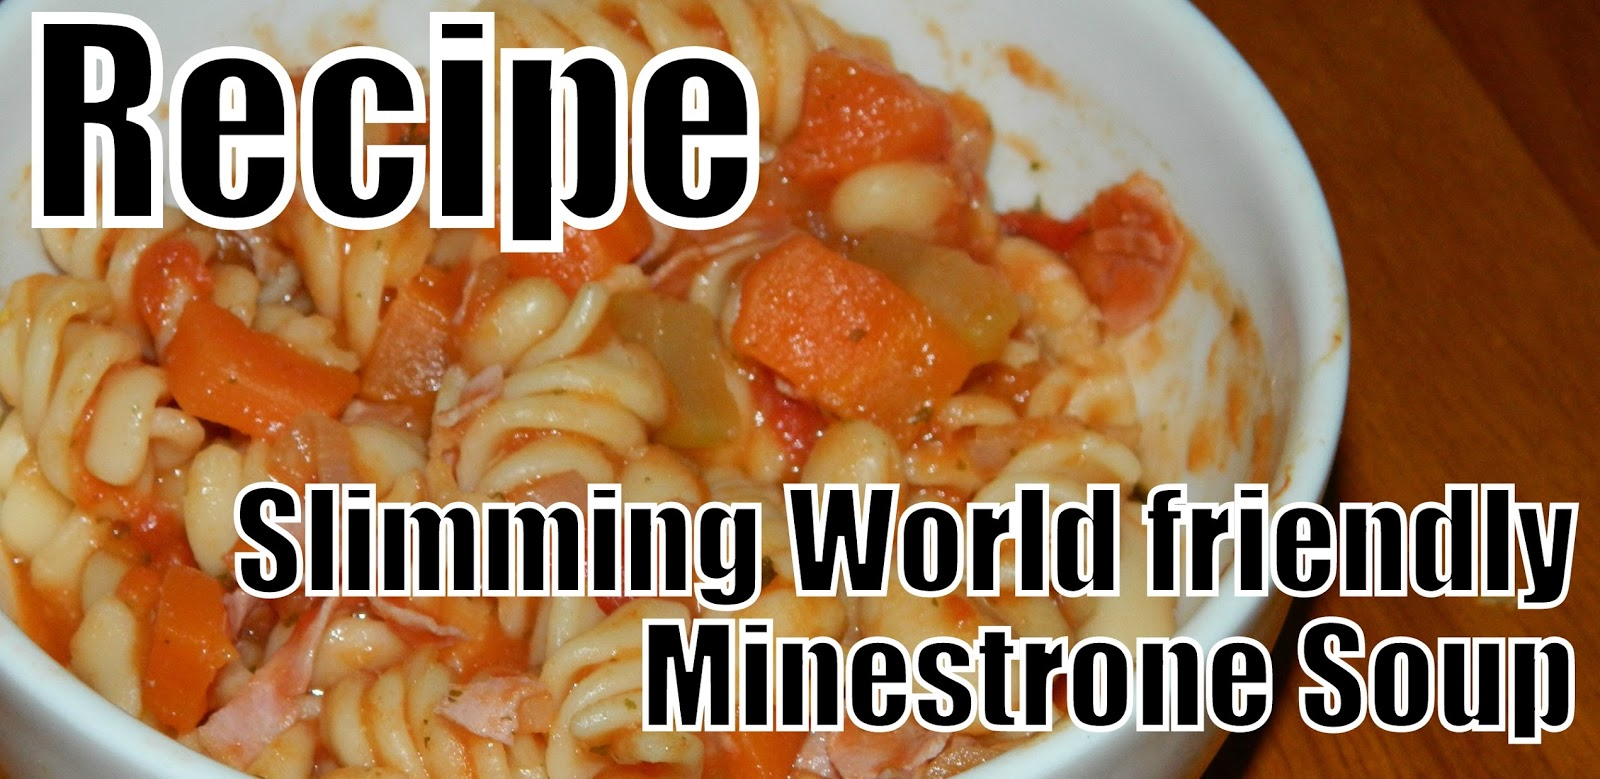 Minestrone Soup Slimming World